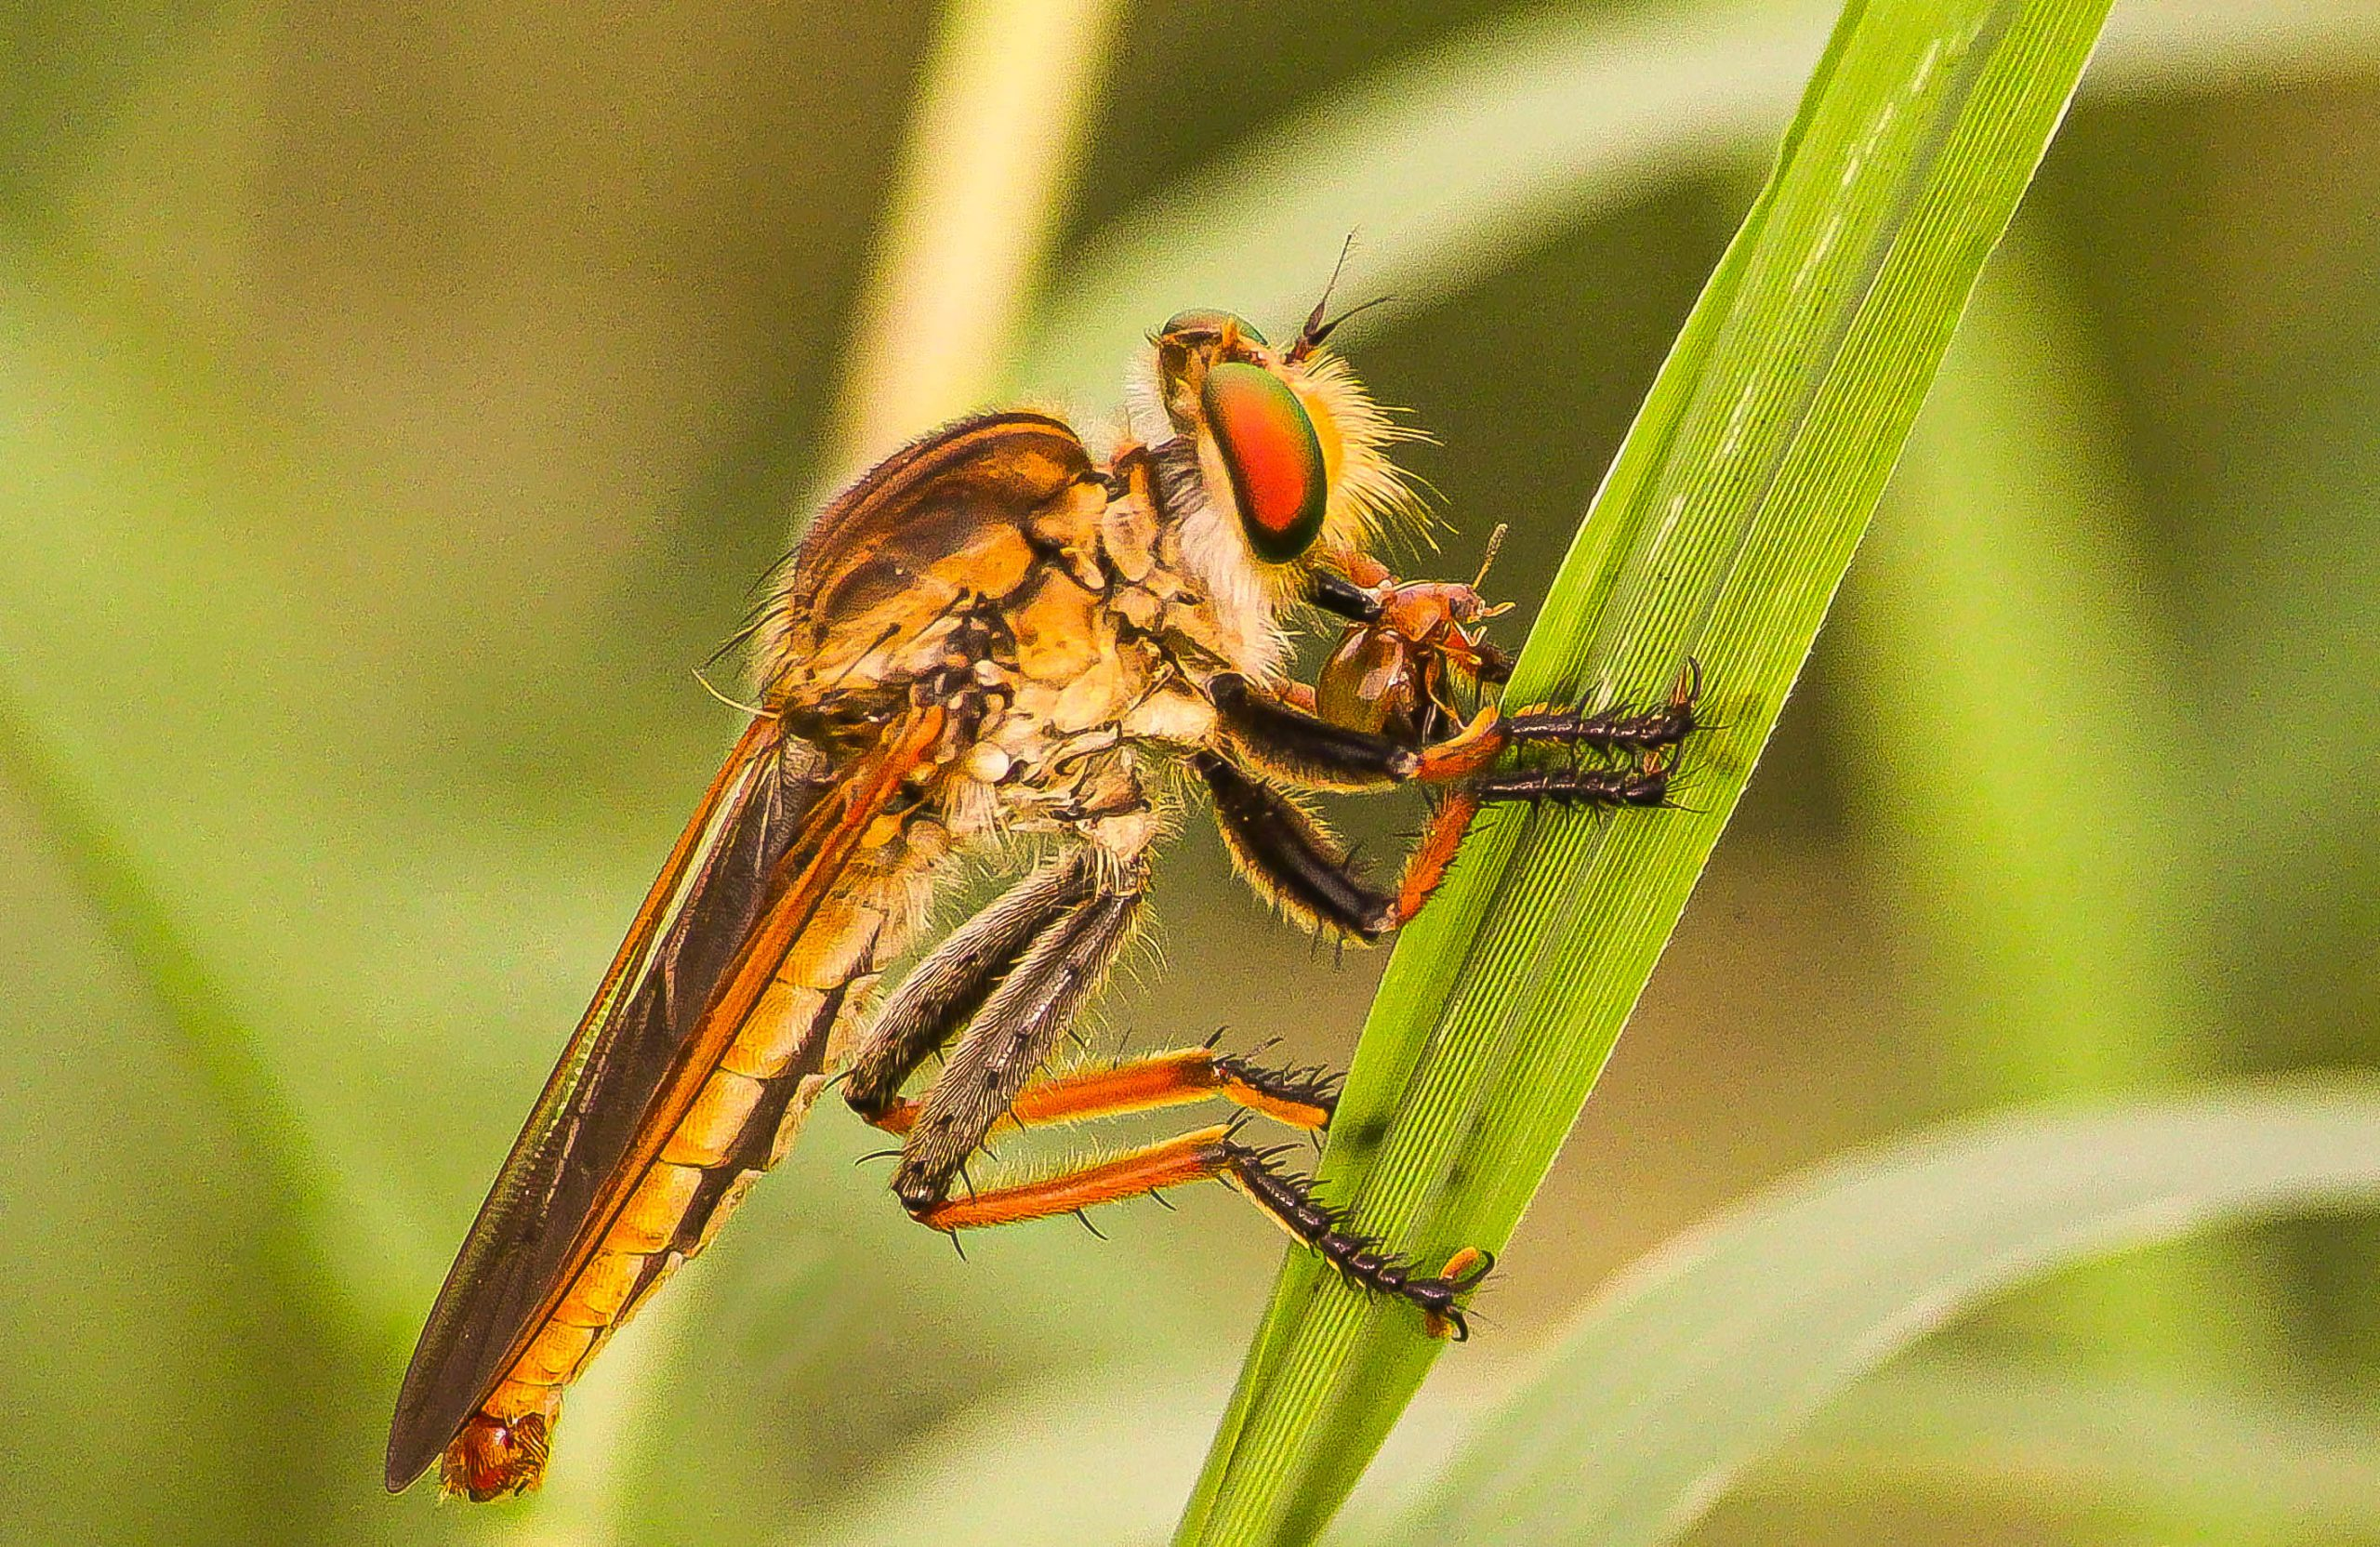 A robberfly on a leaf